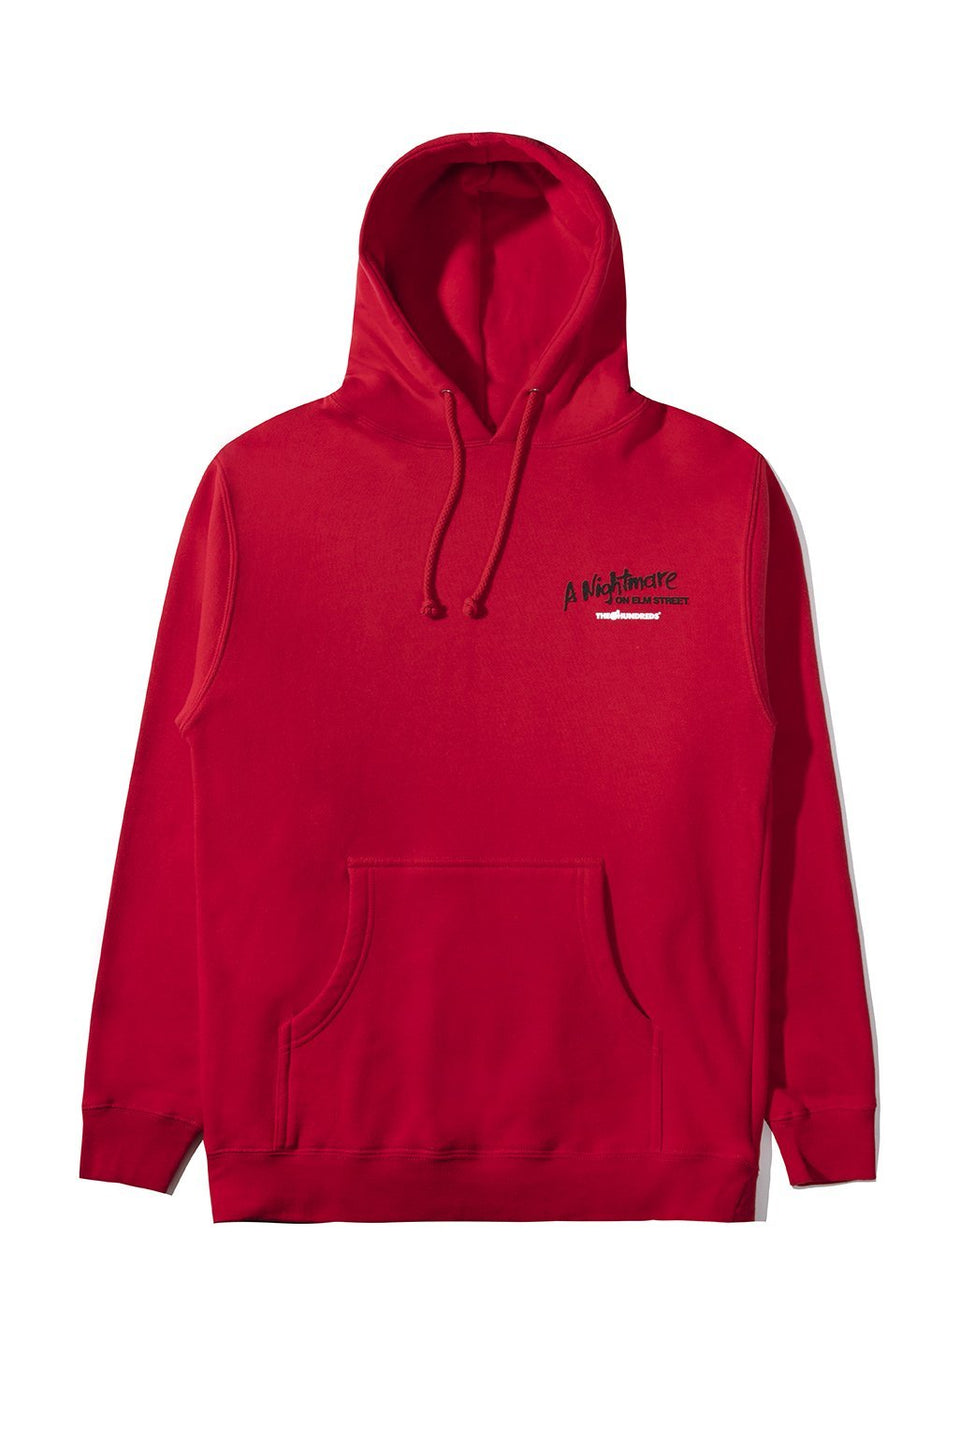 The Hundreds Cover Pullover Hoodie Red